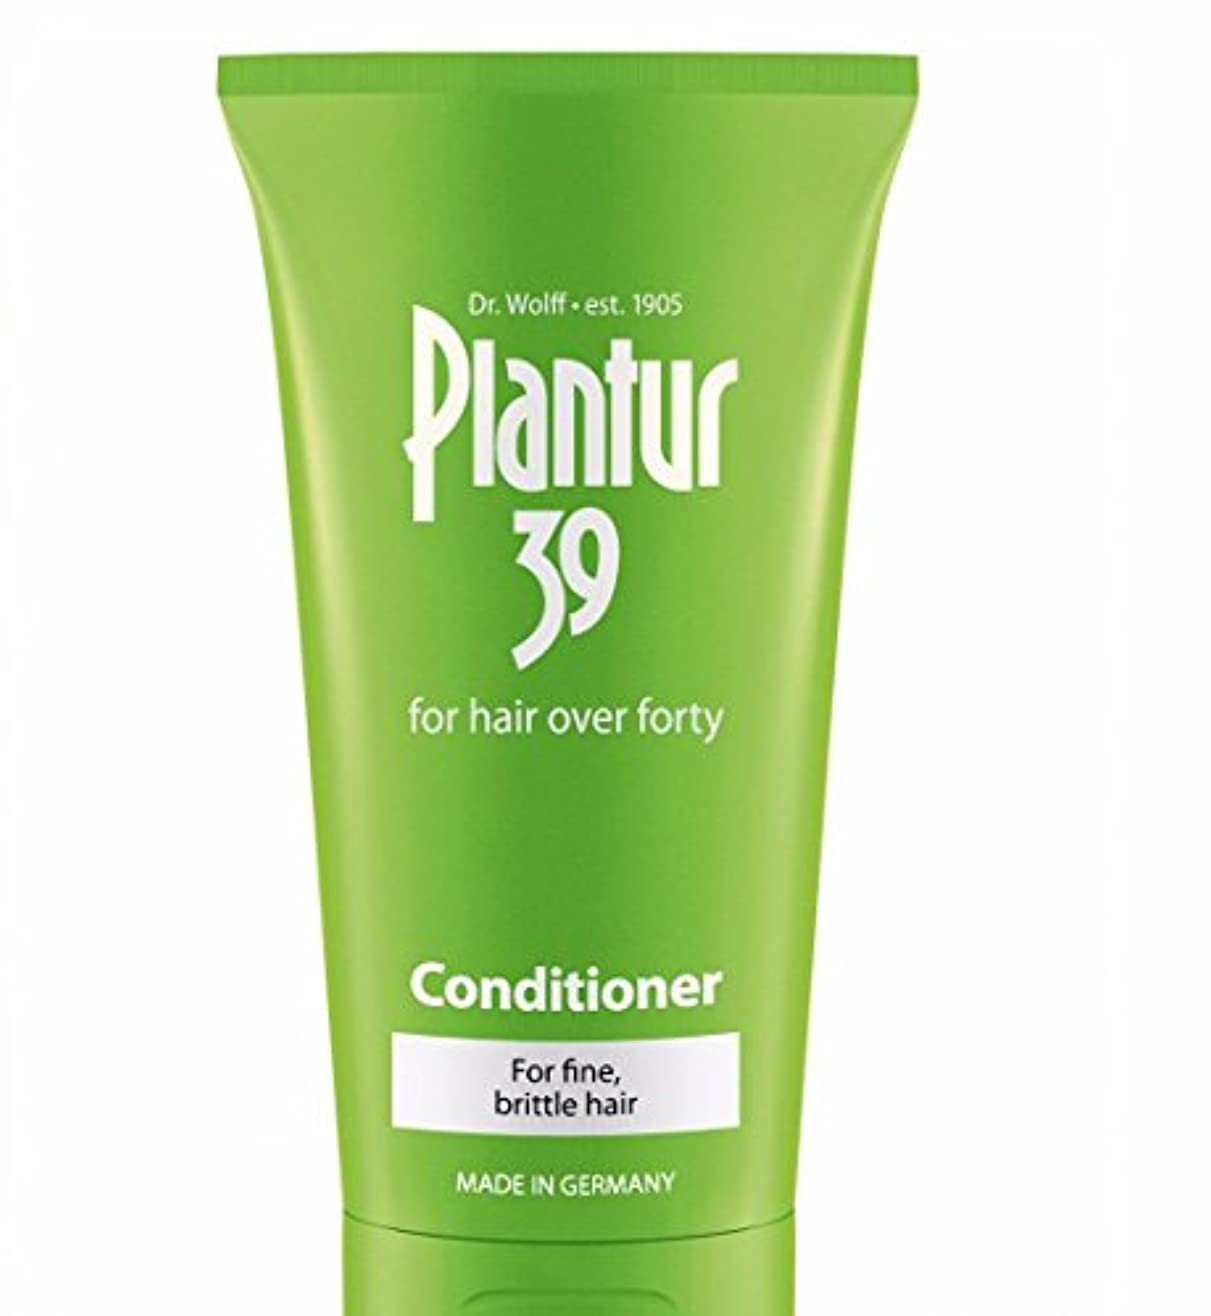 物理学者気になるするだろうPlantur 37 150ml Strengthening and Moisturizing Conditioner